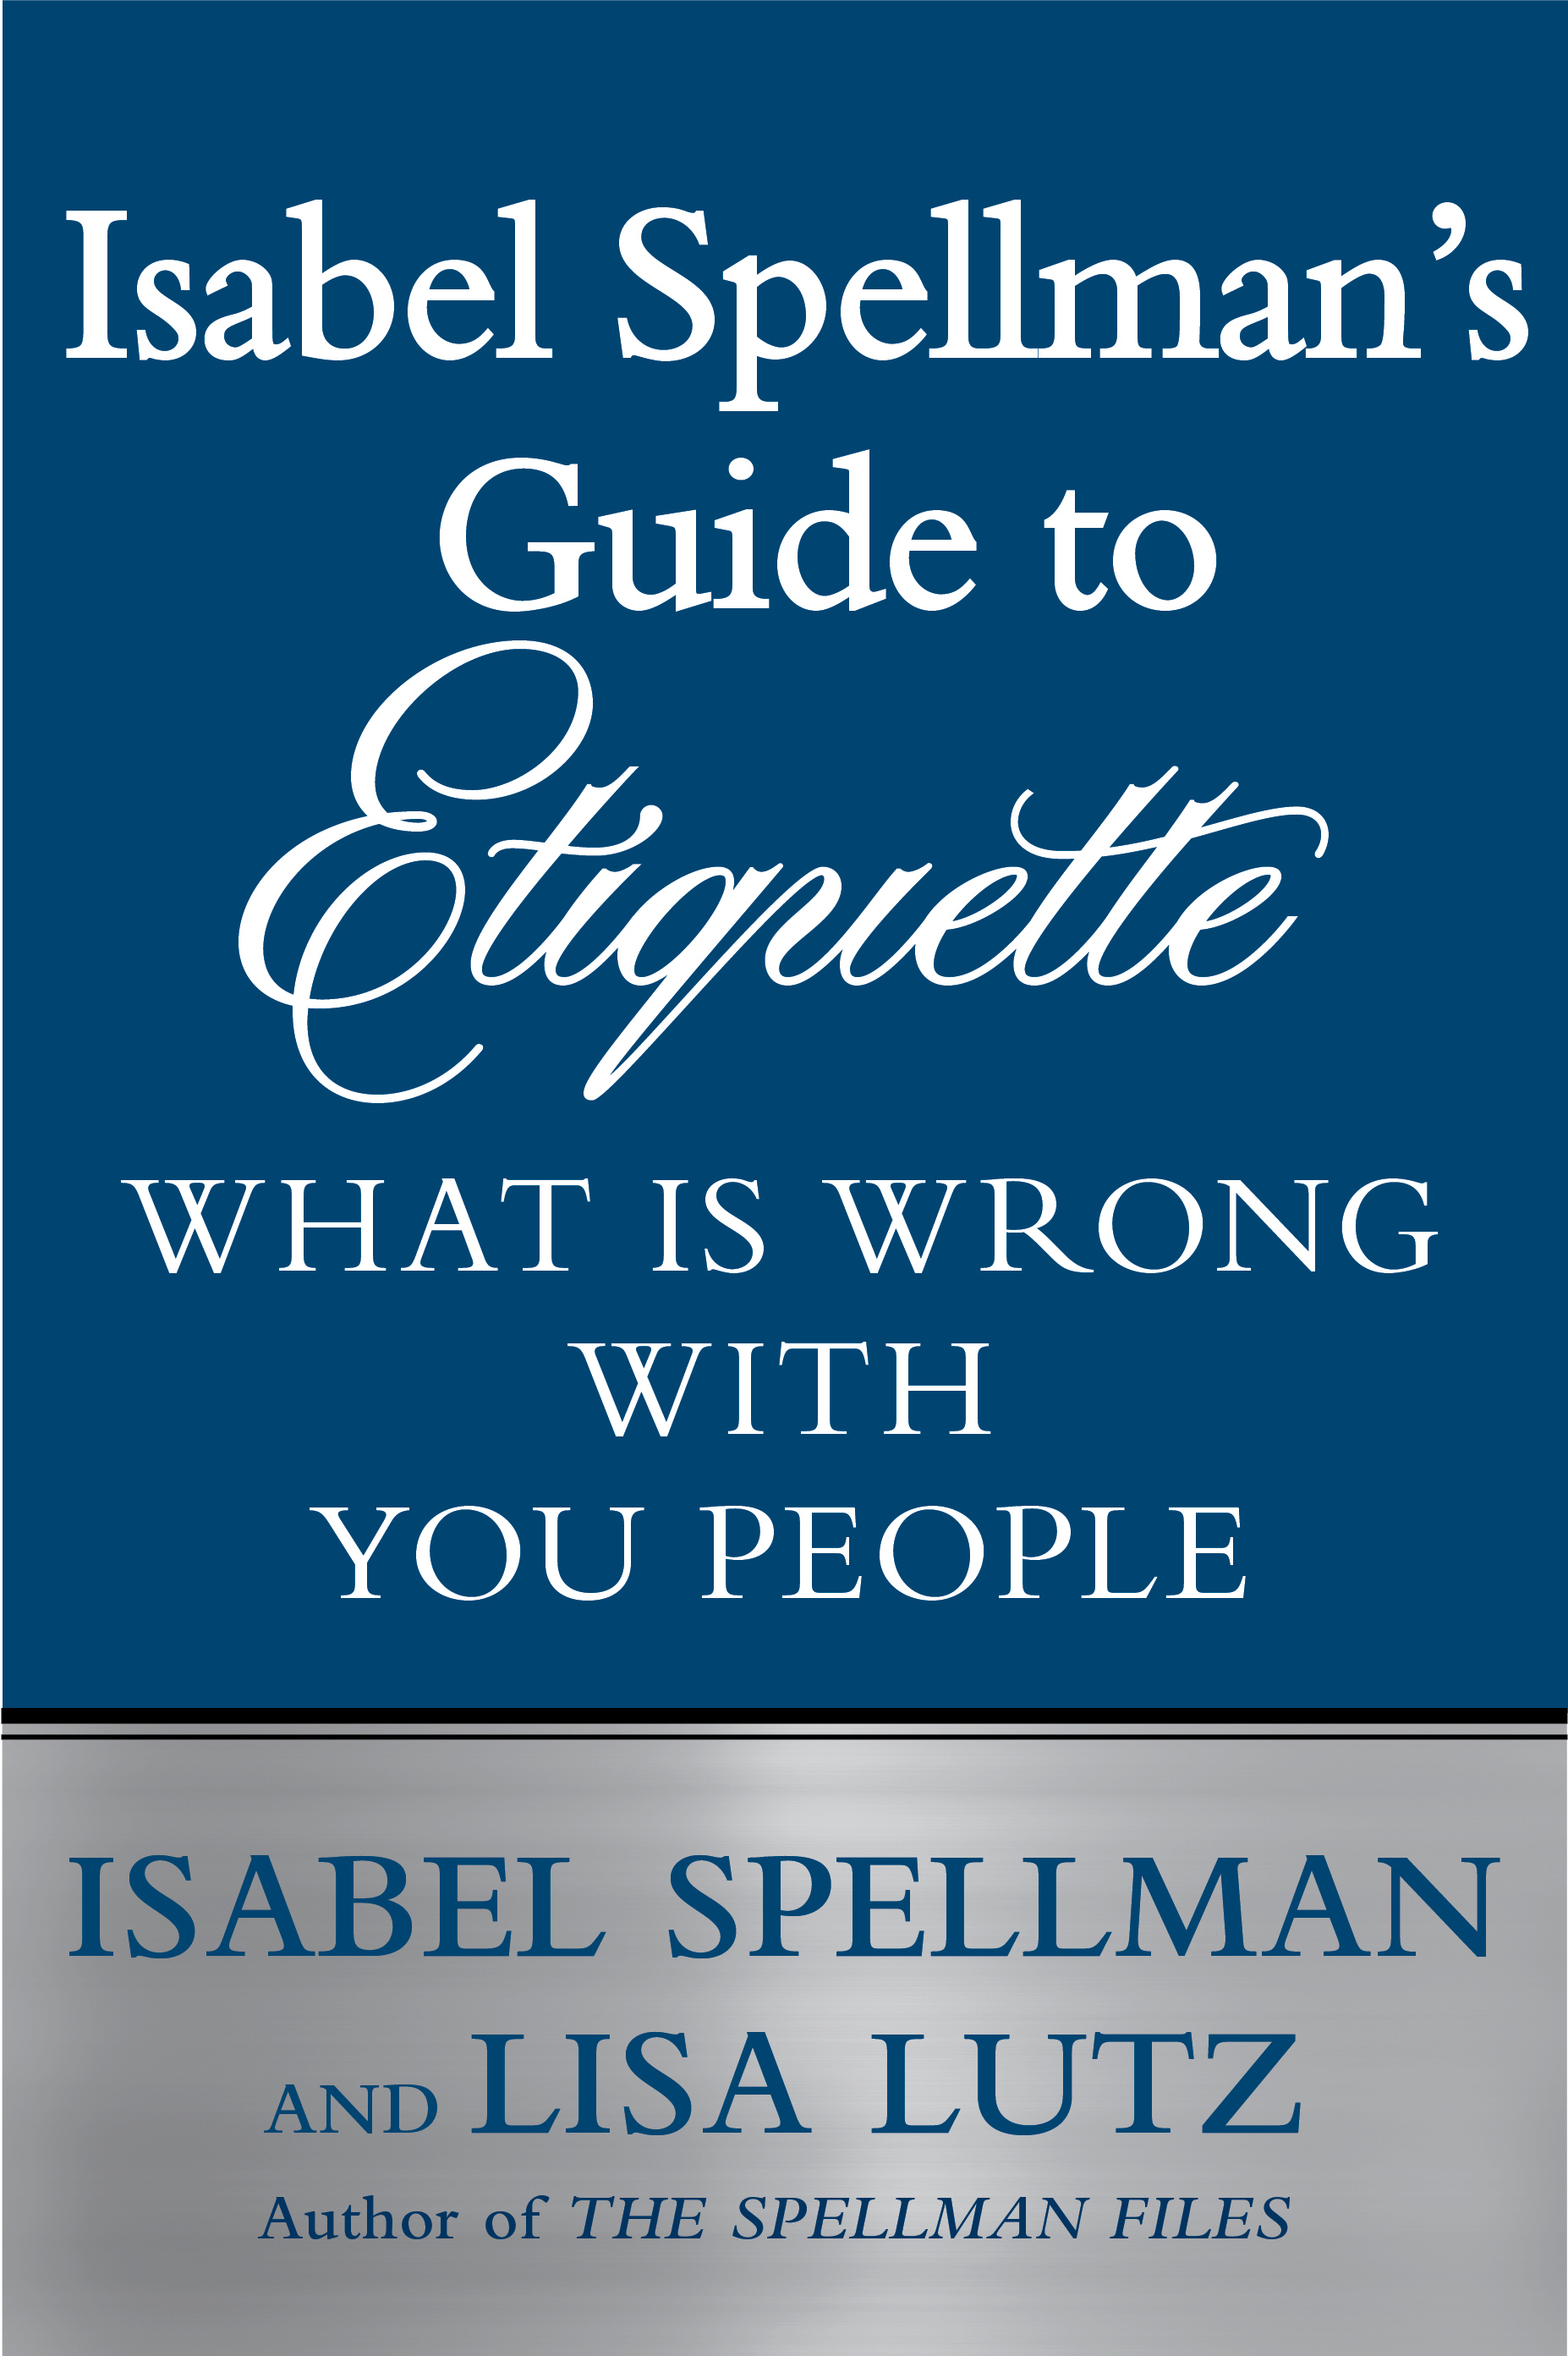 Isabel Spellman's Guide To Etiquette